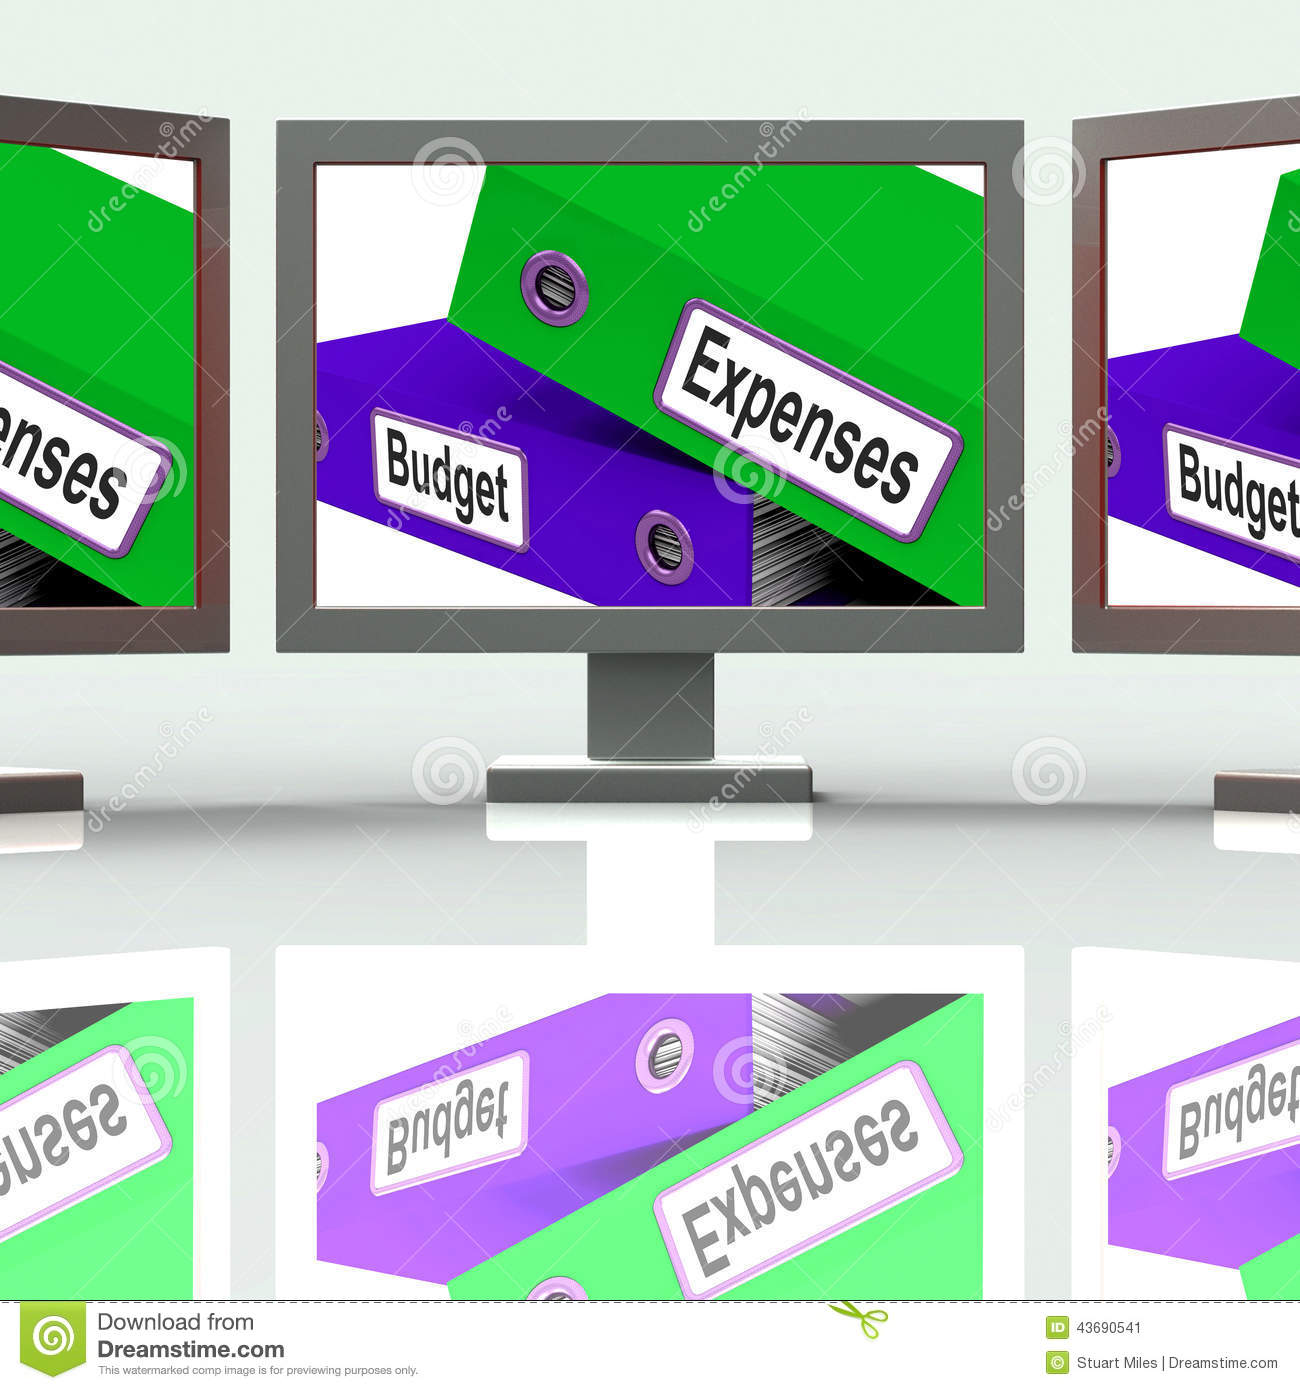 budget expenses screen mean business finances and budgeting stock